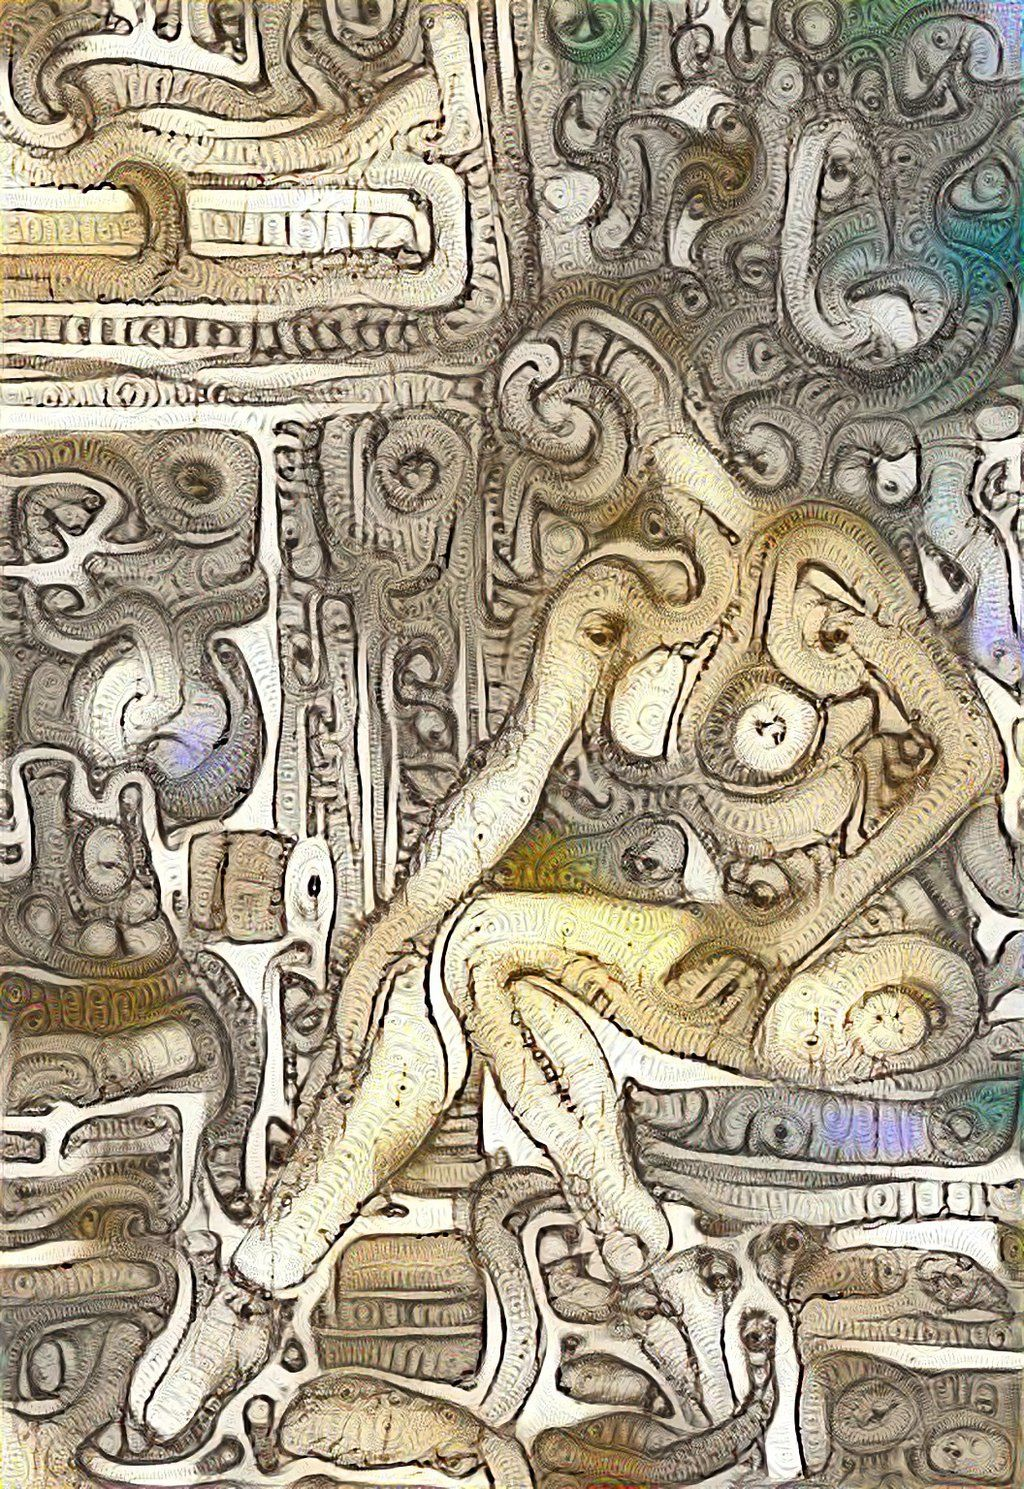 160712a5 DeepDream13 by MadFractalist on DeviantArt